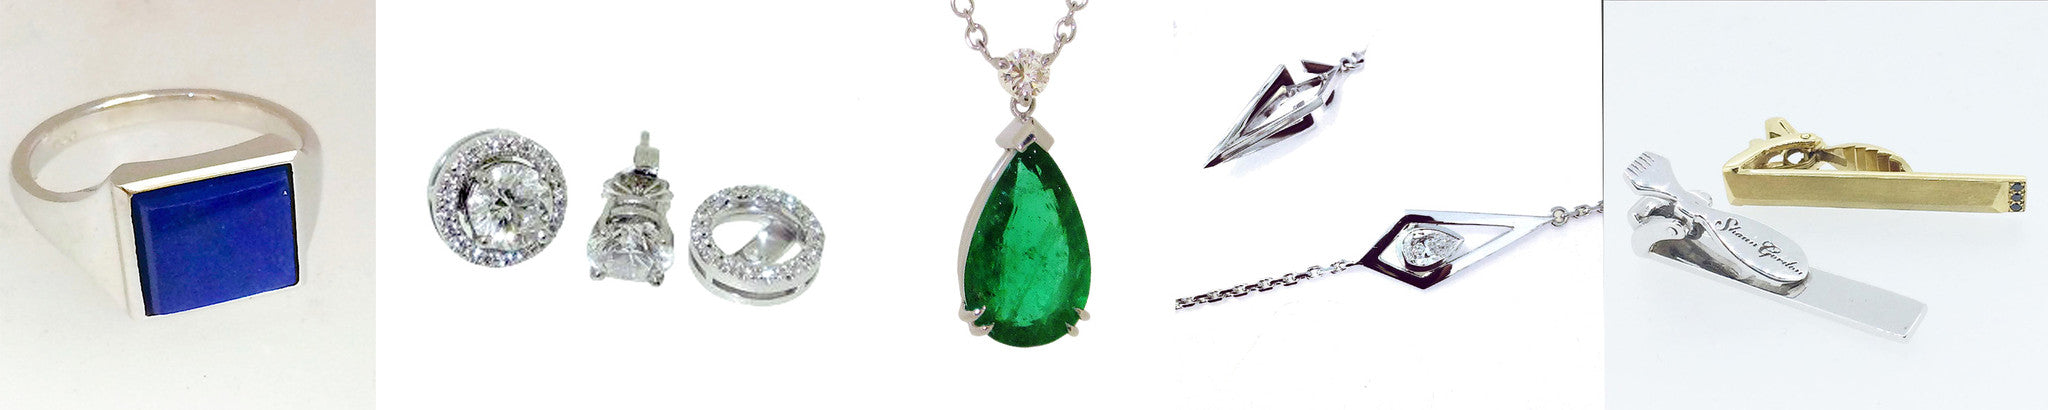 Fine custom diamond and gemstone jewellery made to order  bespoke image gallery